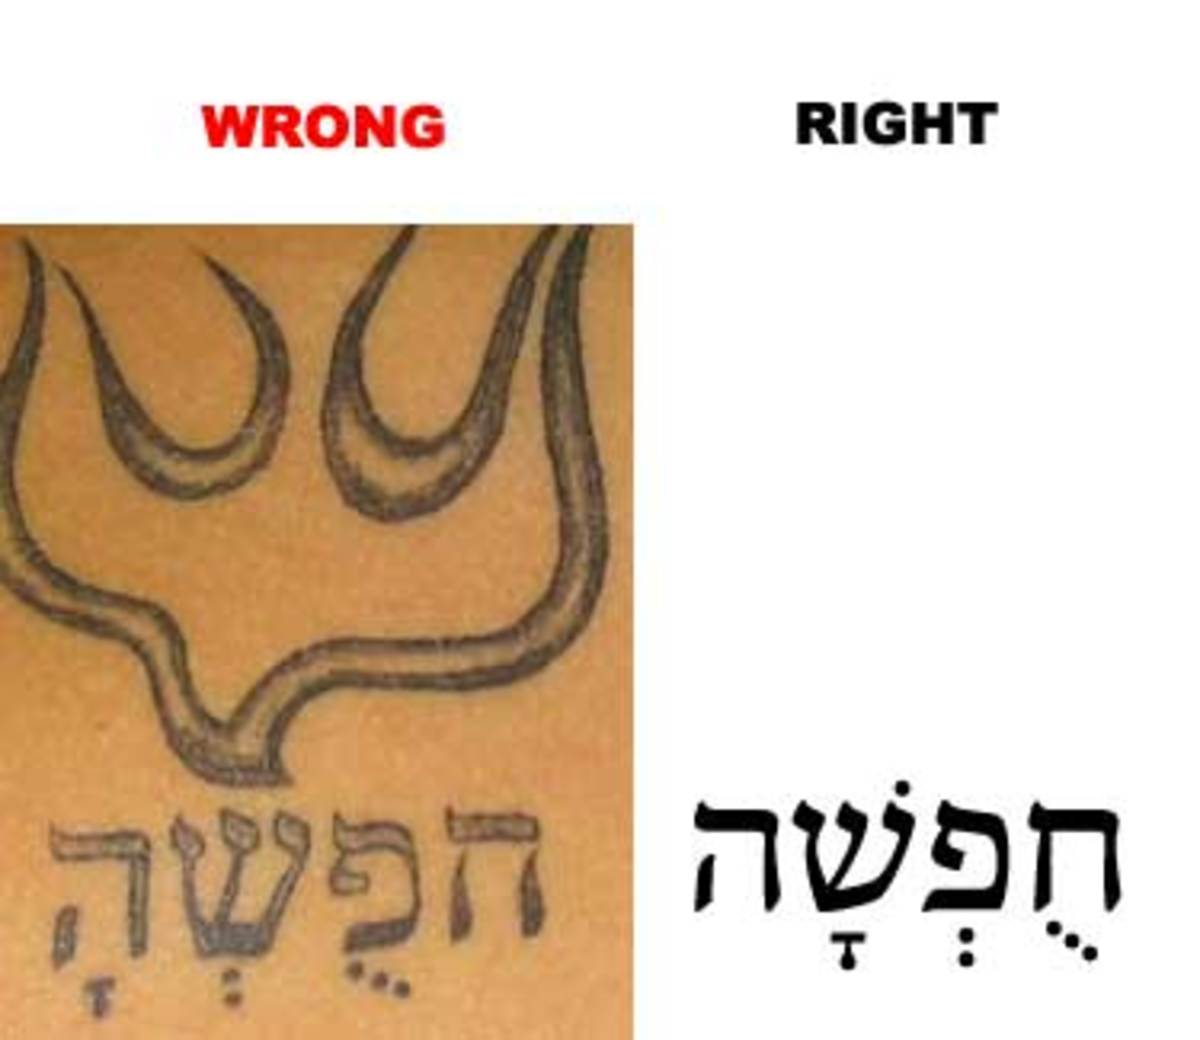 """For this tattoo, it is supposed to be the Hebrew word for """"freedom"""".  However, due to the incorrectly placed vowel point beneath the characters, it instead becomes """"vacation""""."""